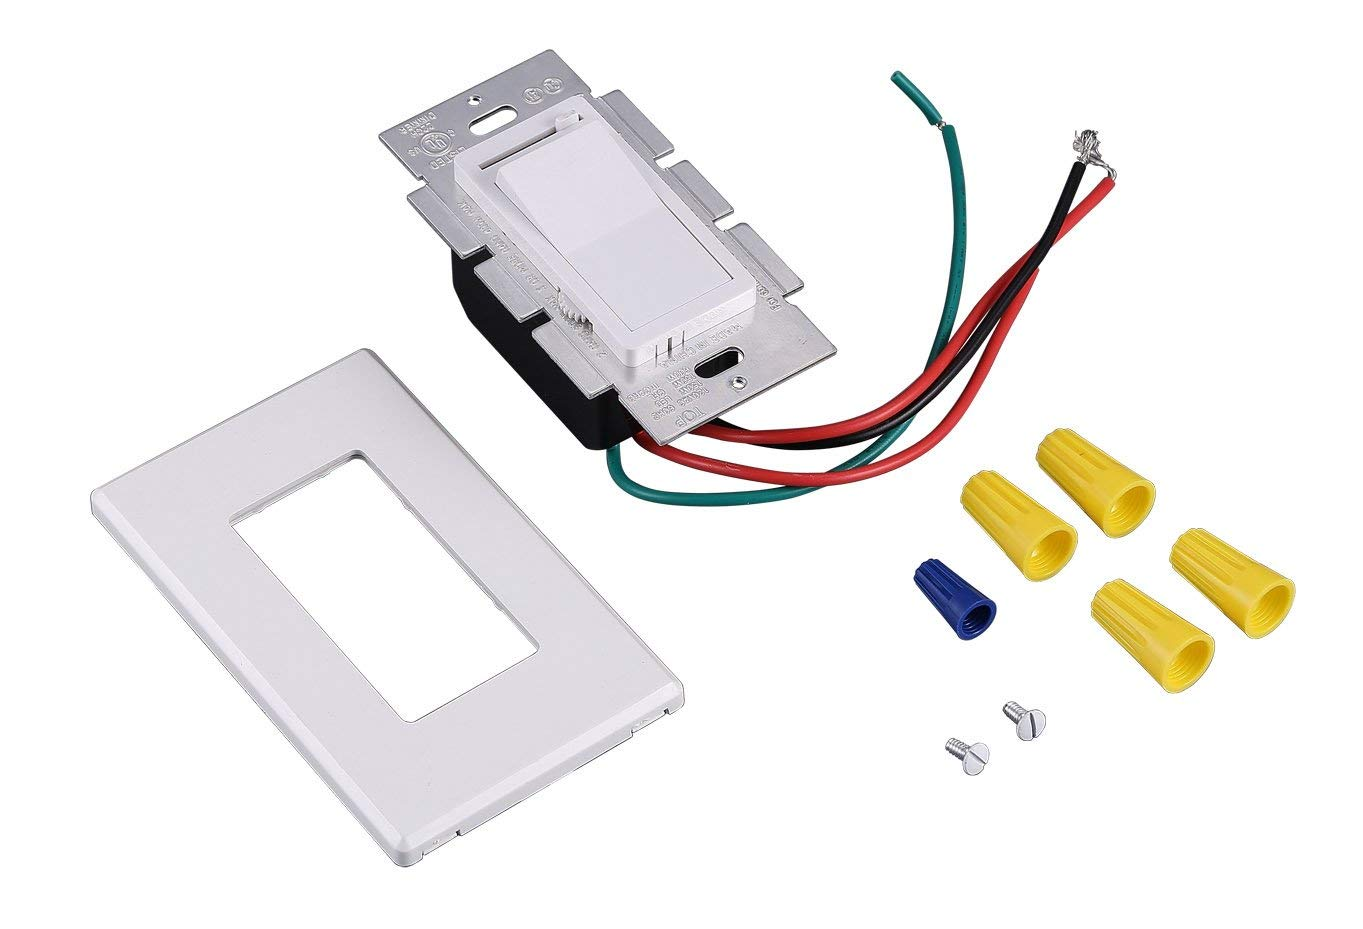 In Wall Dimmer Switch For LED Light/CFL/Incandescent, 3-way Single Pole, Cover Plate Included, White